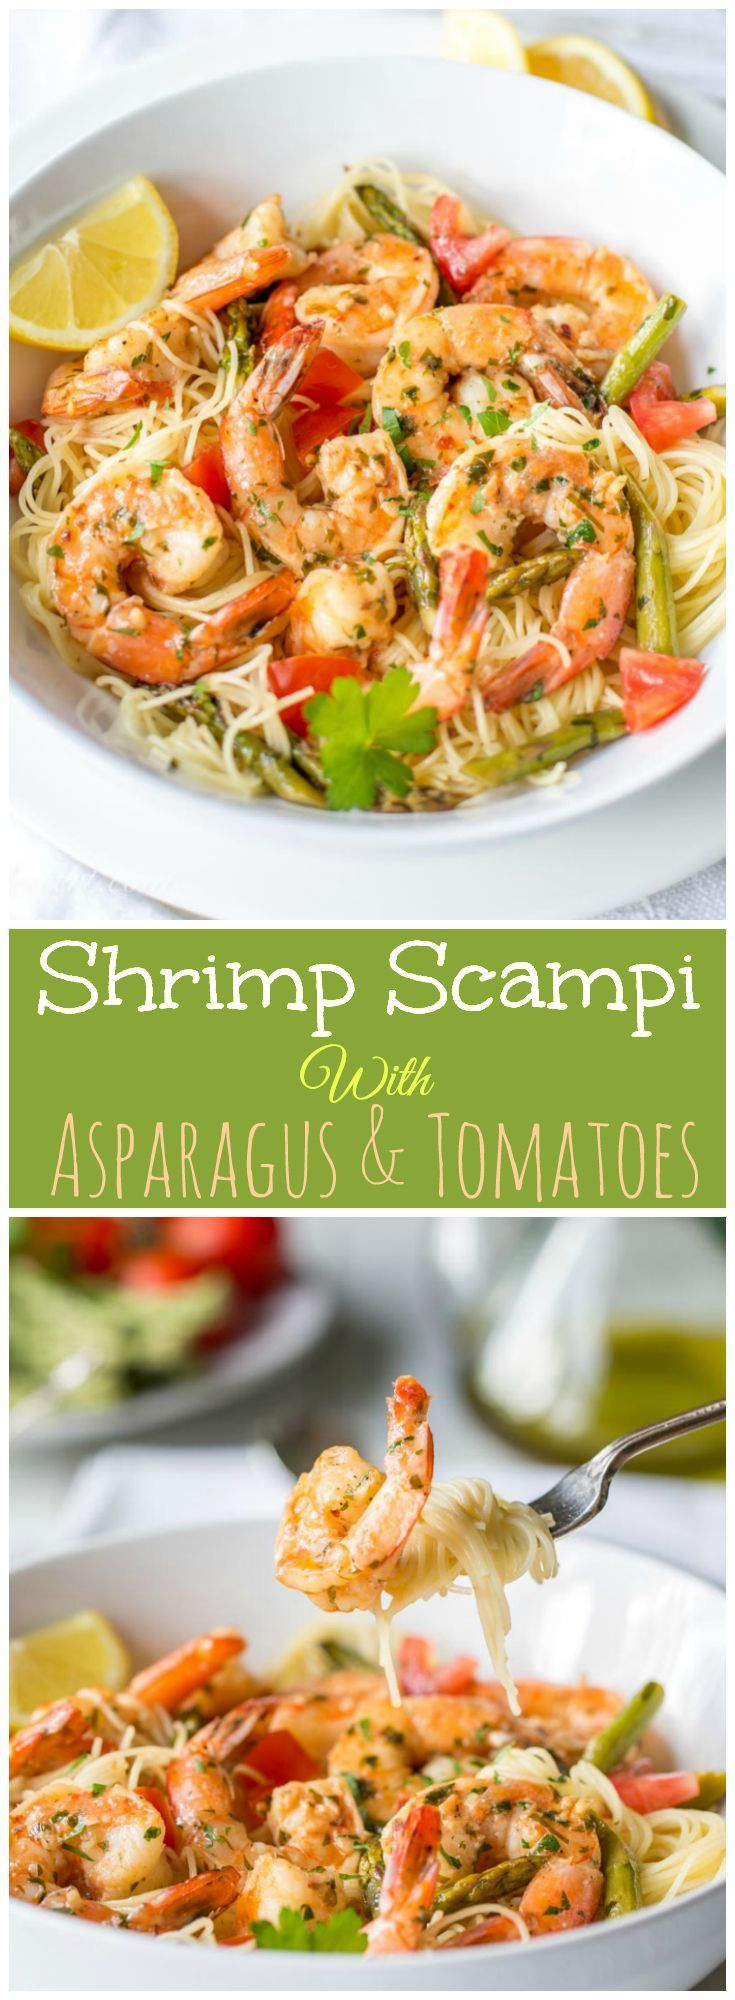 Shrimp Scampi With Asparagus And Tomatoes Recipe Food Group Pinterest Shrimp Scampi And